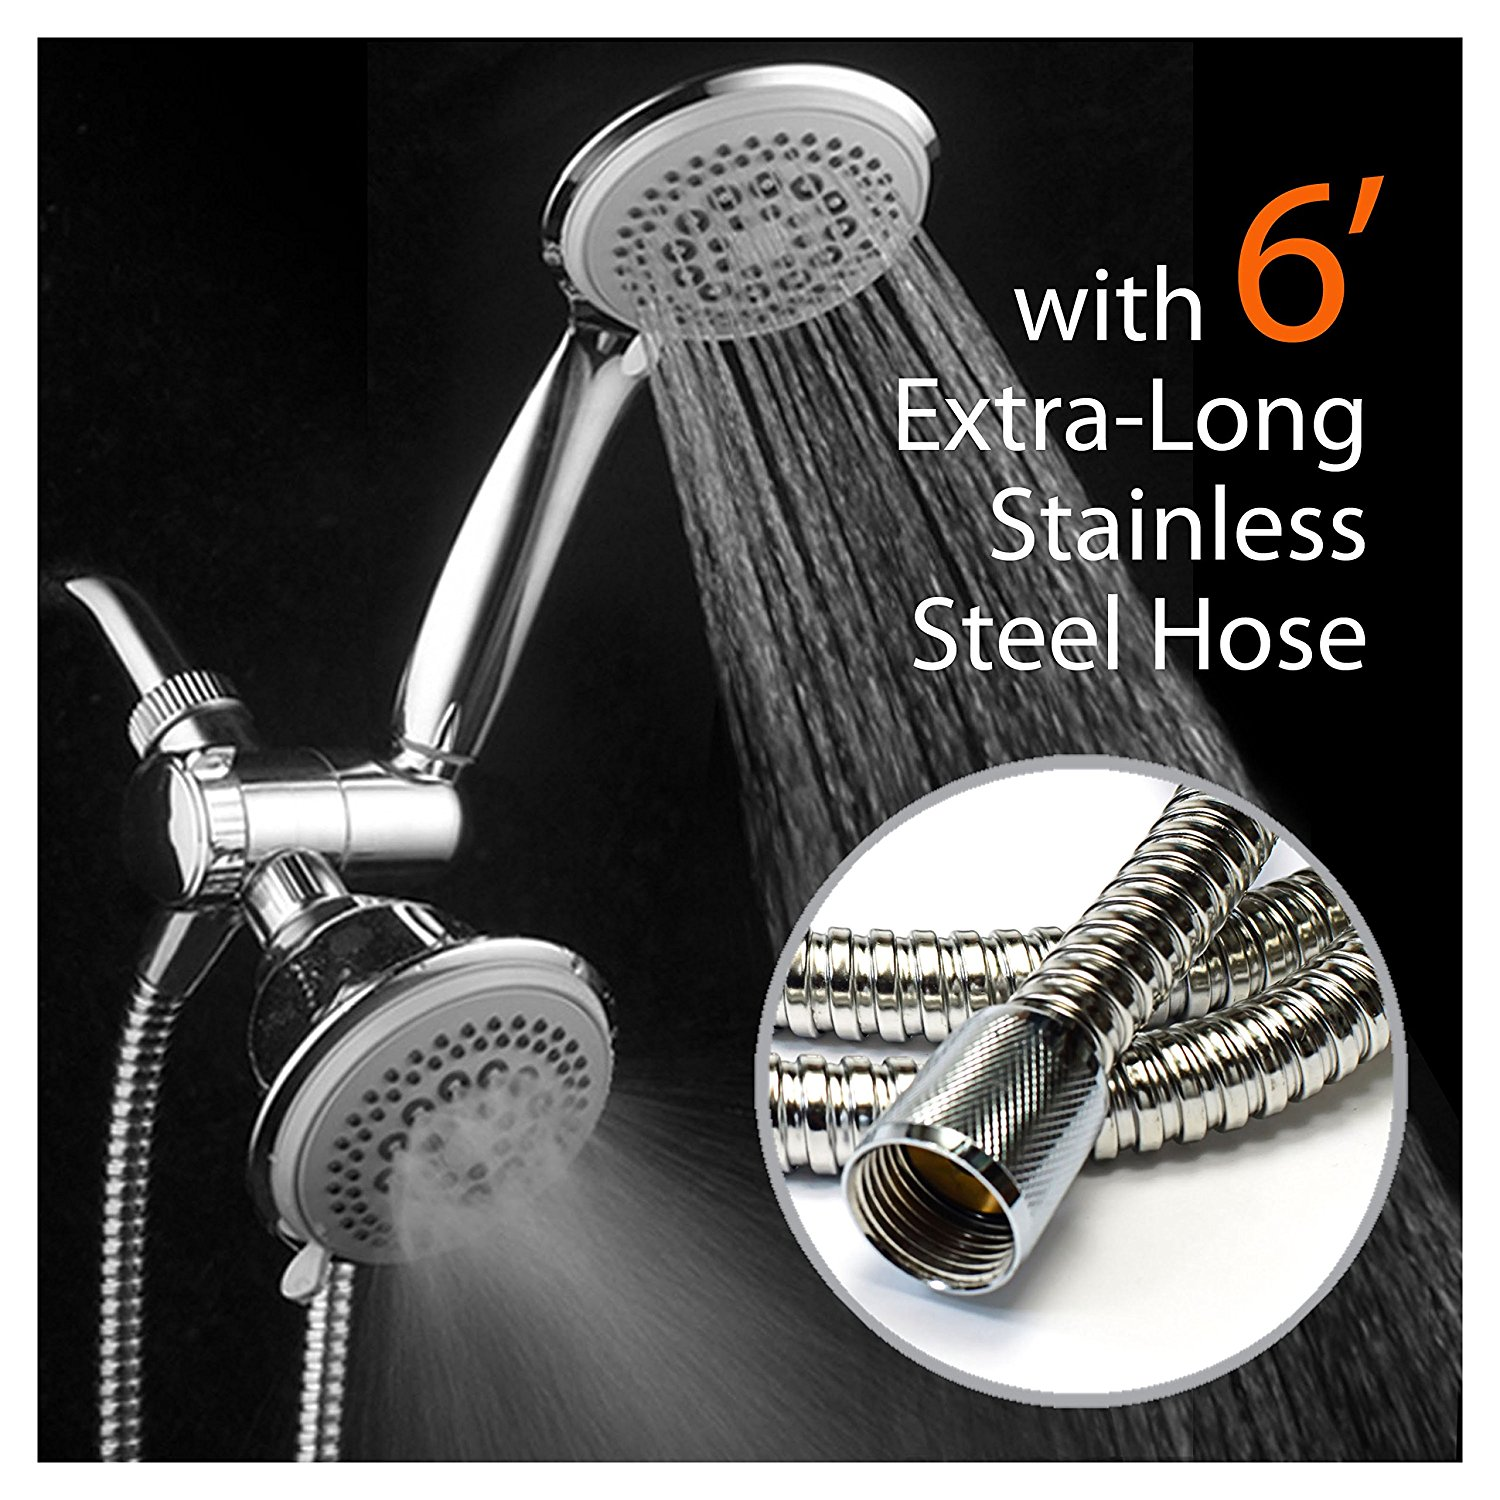 DreamSpa® Ultra-Luxury 36-Setting 3-Way Shower Combo with Extra-Long 6-foot Stainless Steel Hose